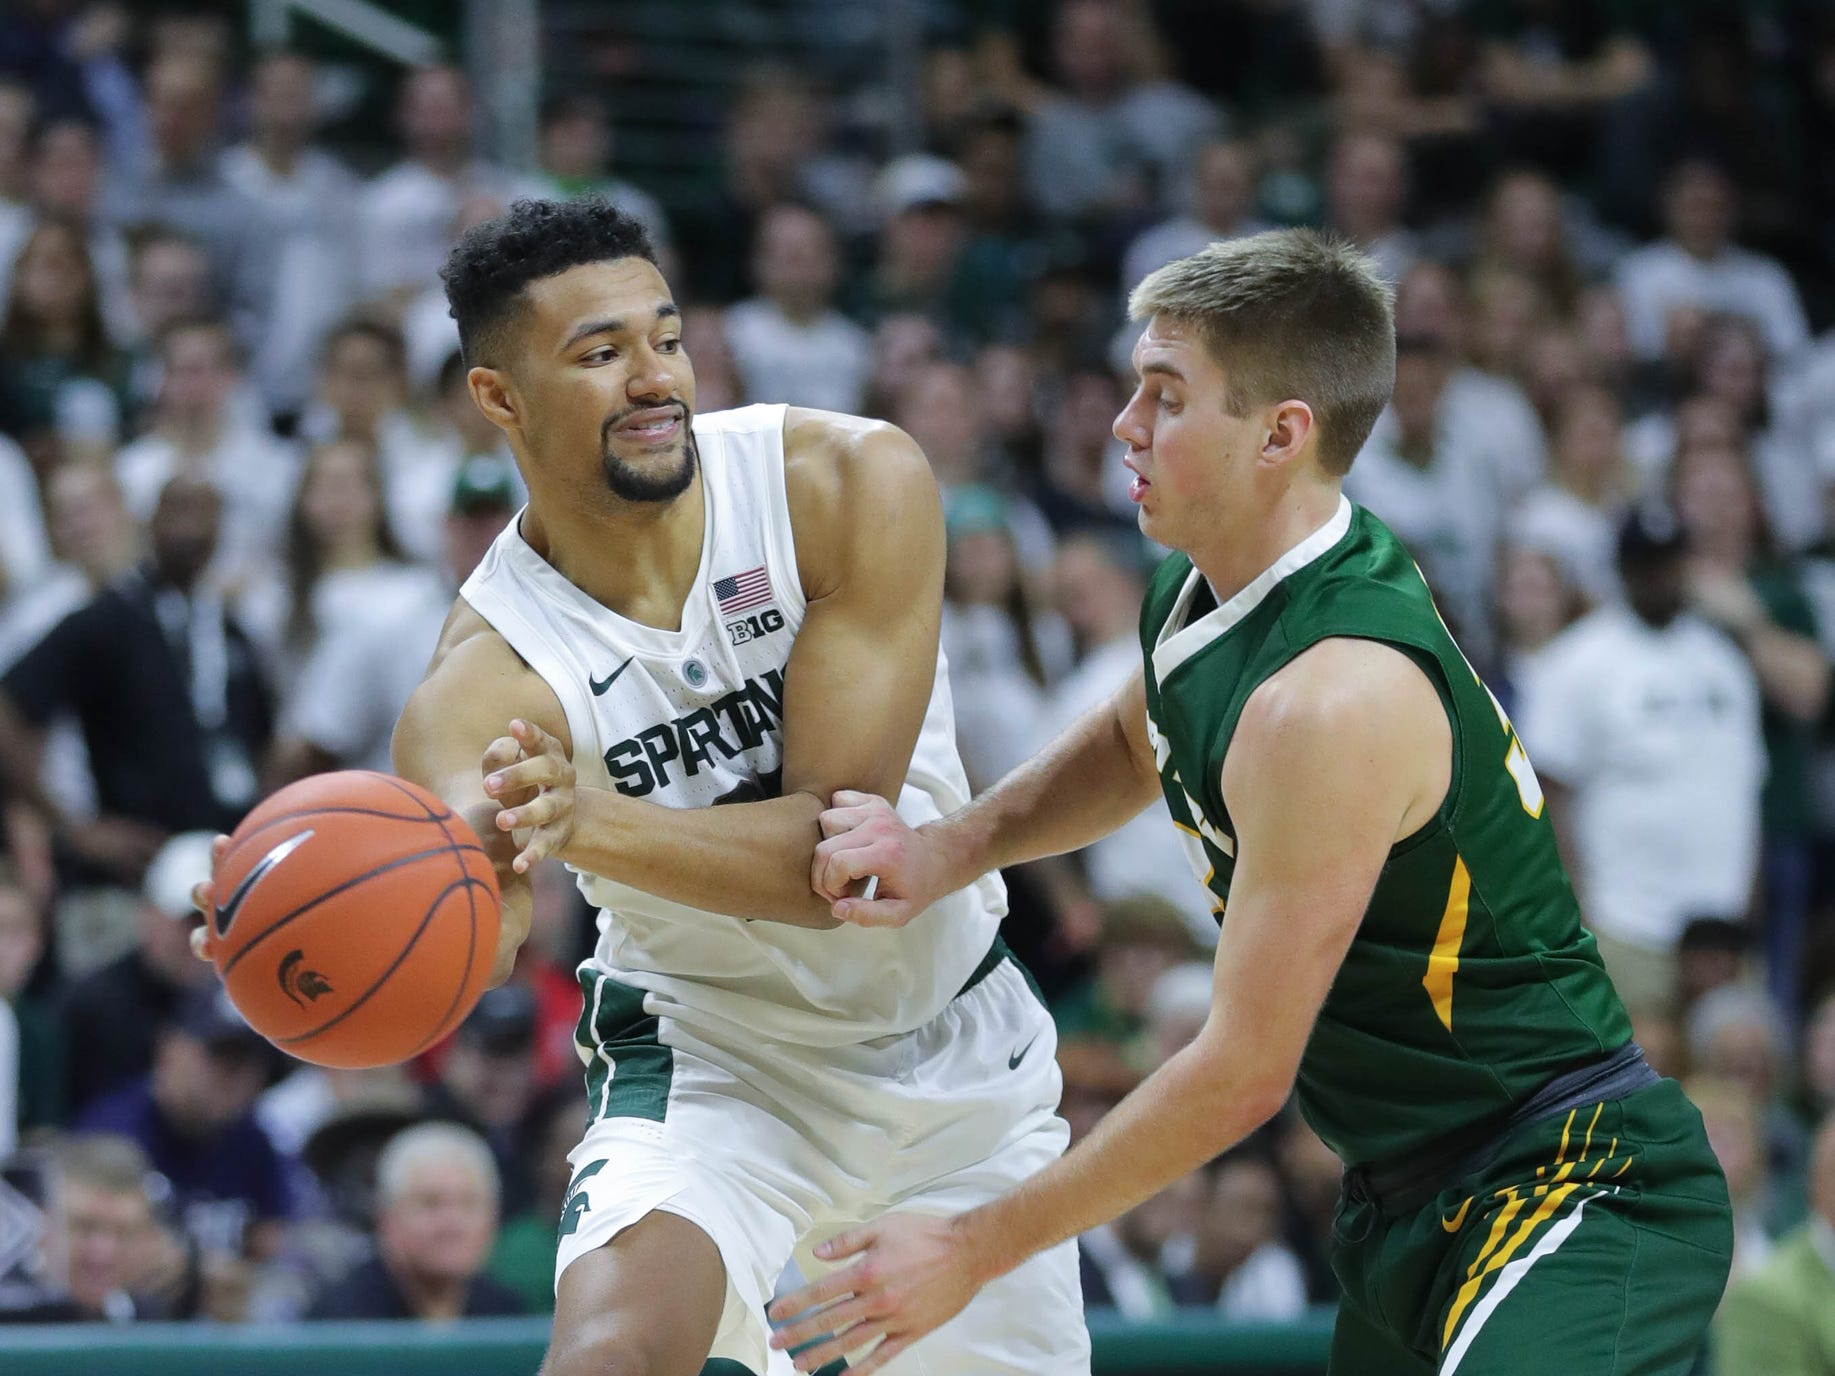 Michigan State forward Kenny Goins passes against Northern Michigan forward Marcus Matelski during second half action Tuesday, October 30, 2018 at the Breslin Center in East Lansing, Mich.